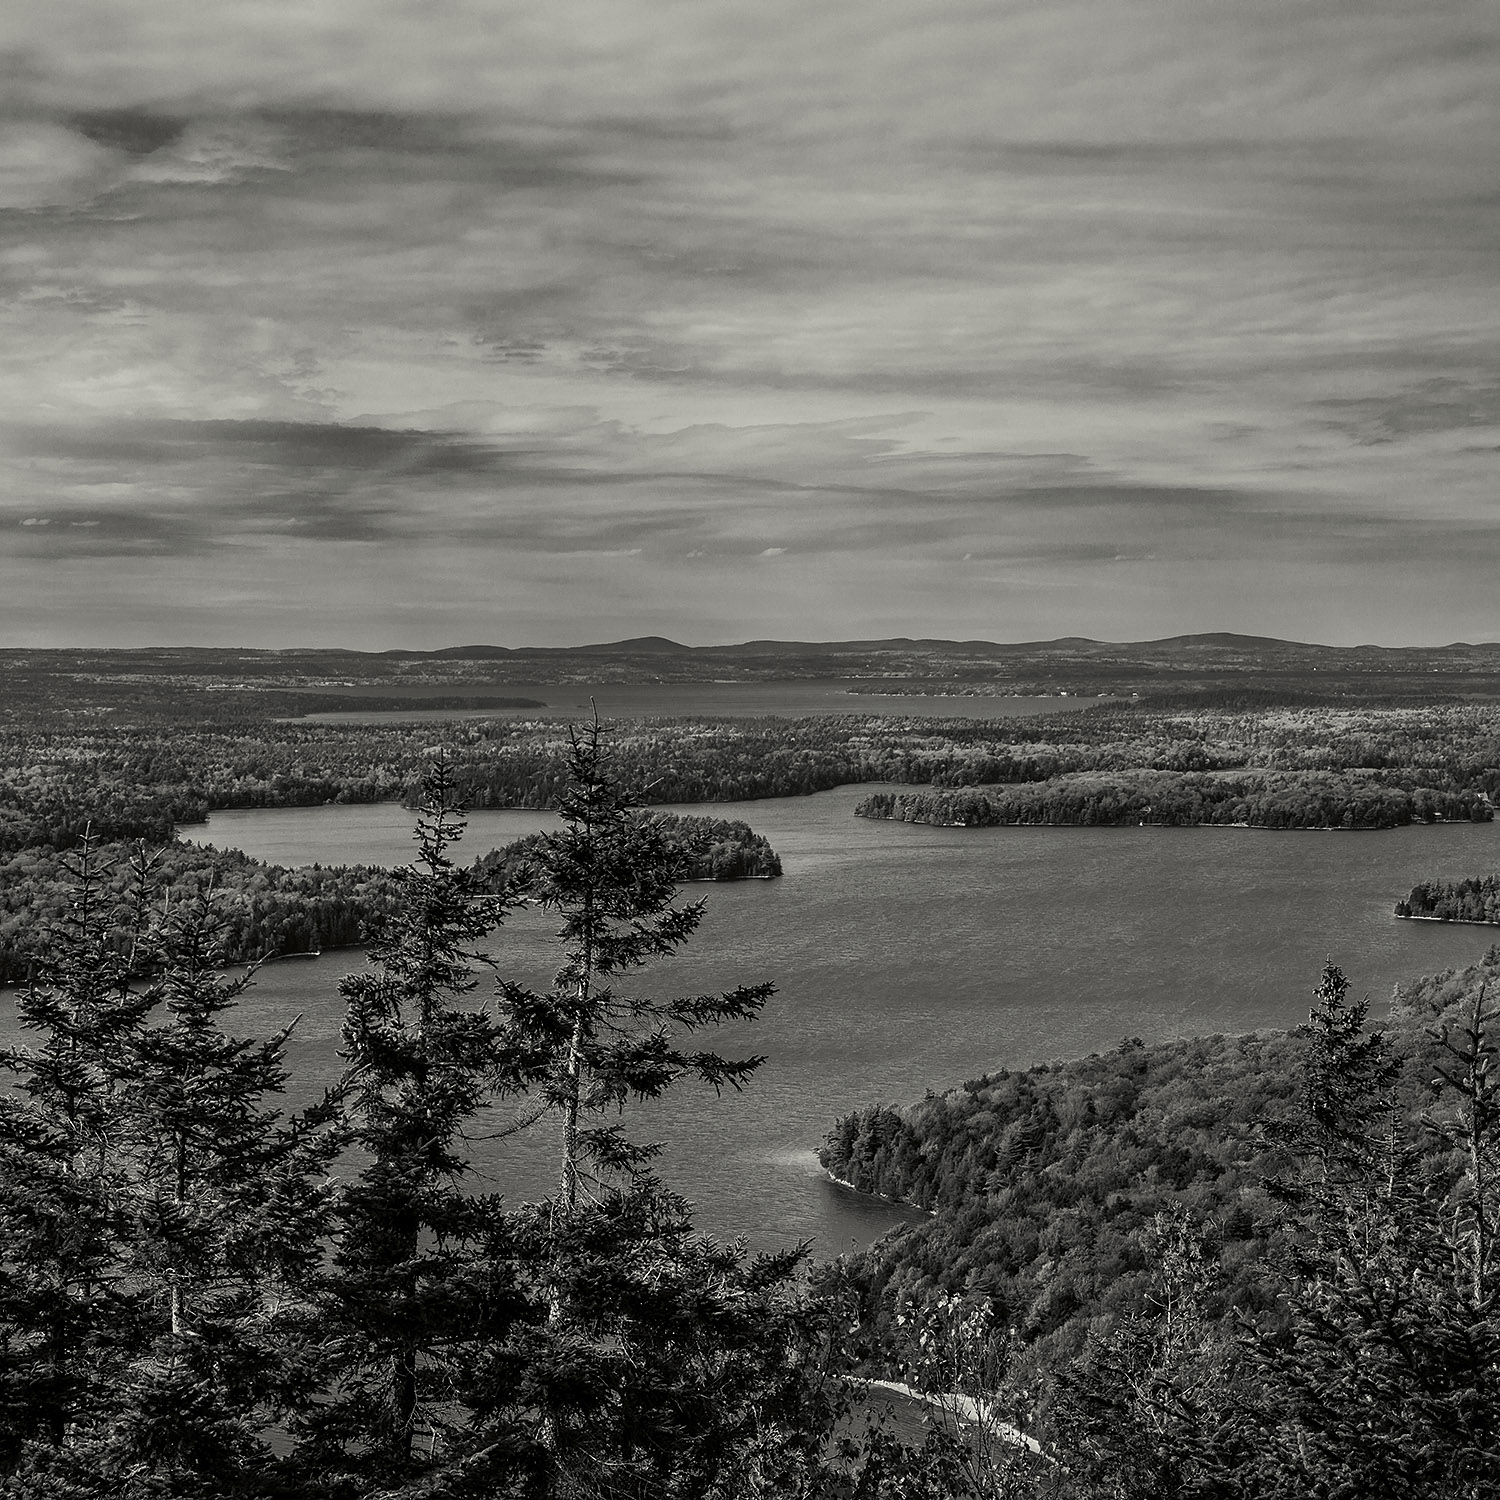 View from Beech Mountain, Acadia, 2017